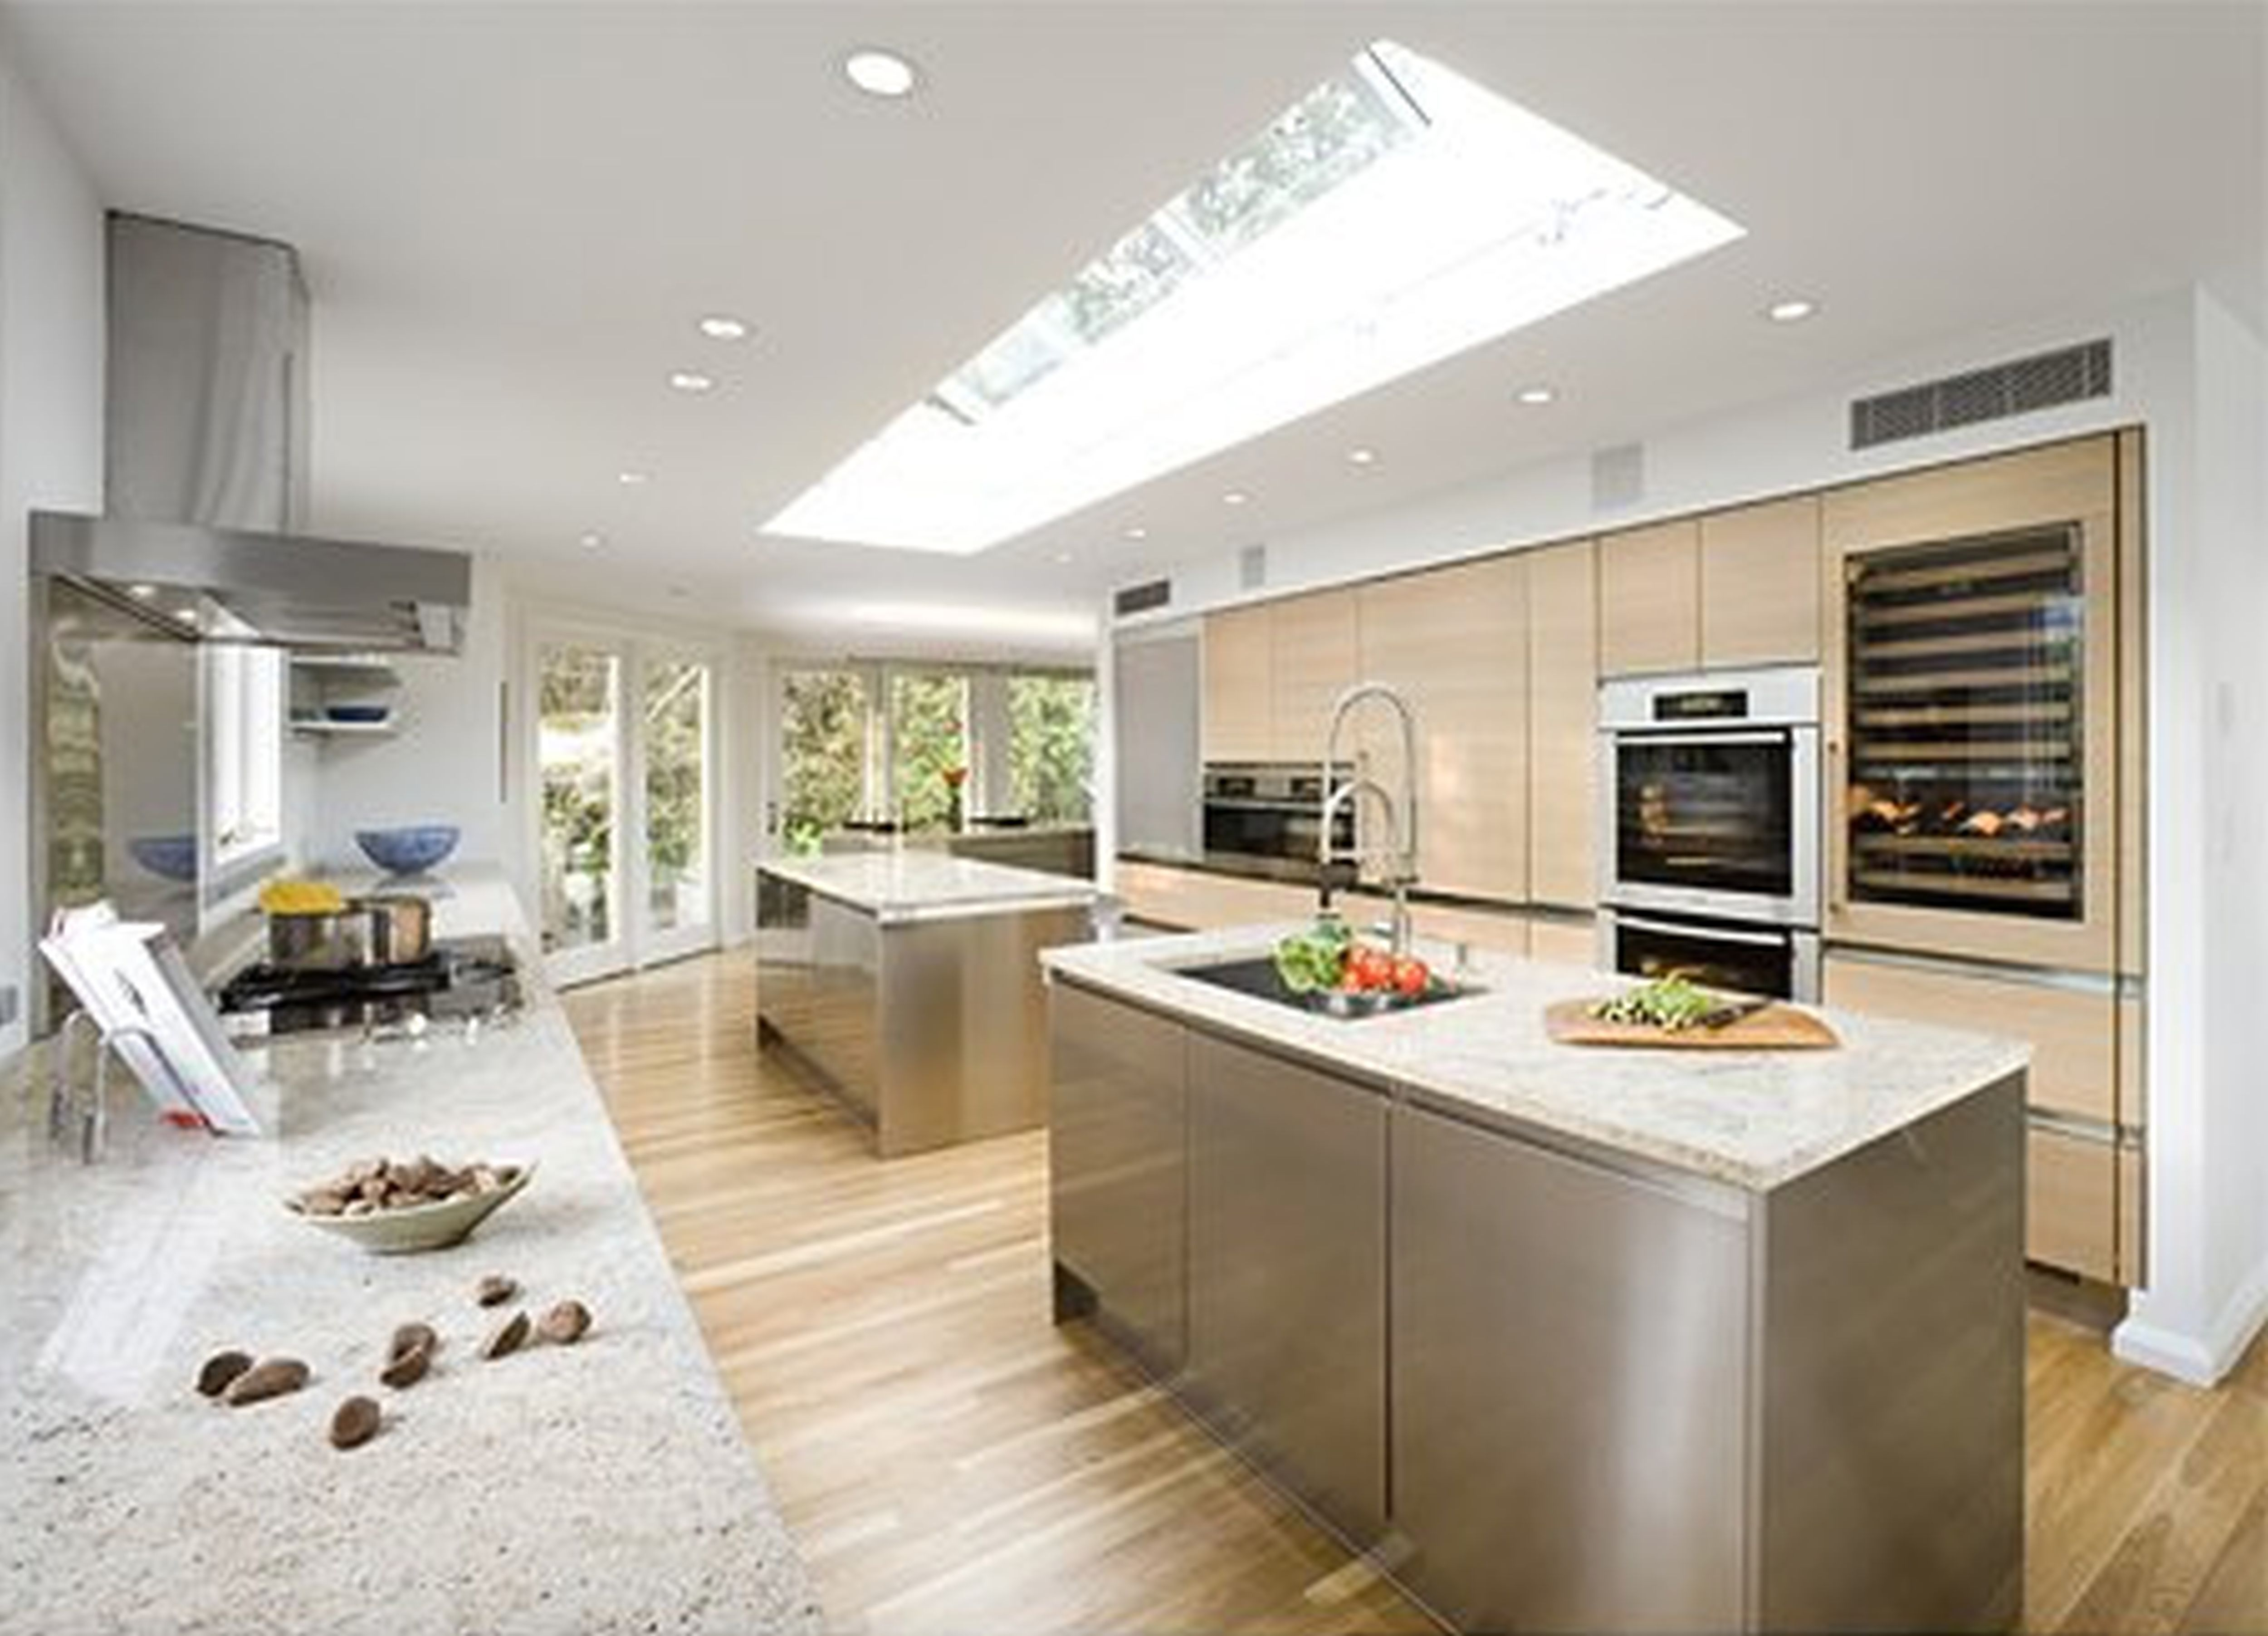 Perfect Big Kitchen Design In Inspiration To Remodel Home with Big